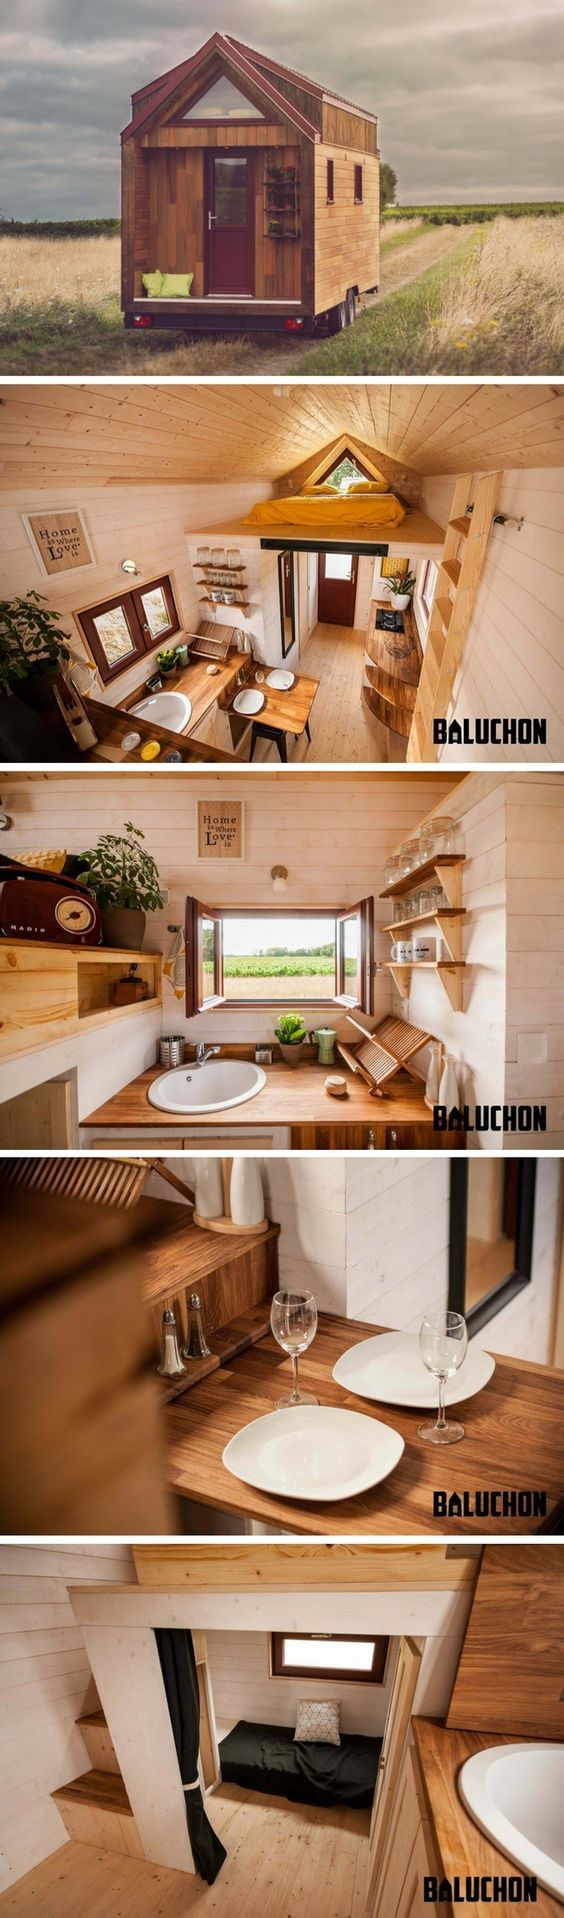 25 best ideas about mobile home kitchens on pinterest cheap mobile homes mobile home. Black Bedroom Furniture Sets. Home Design Ideas